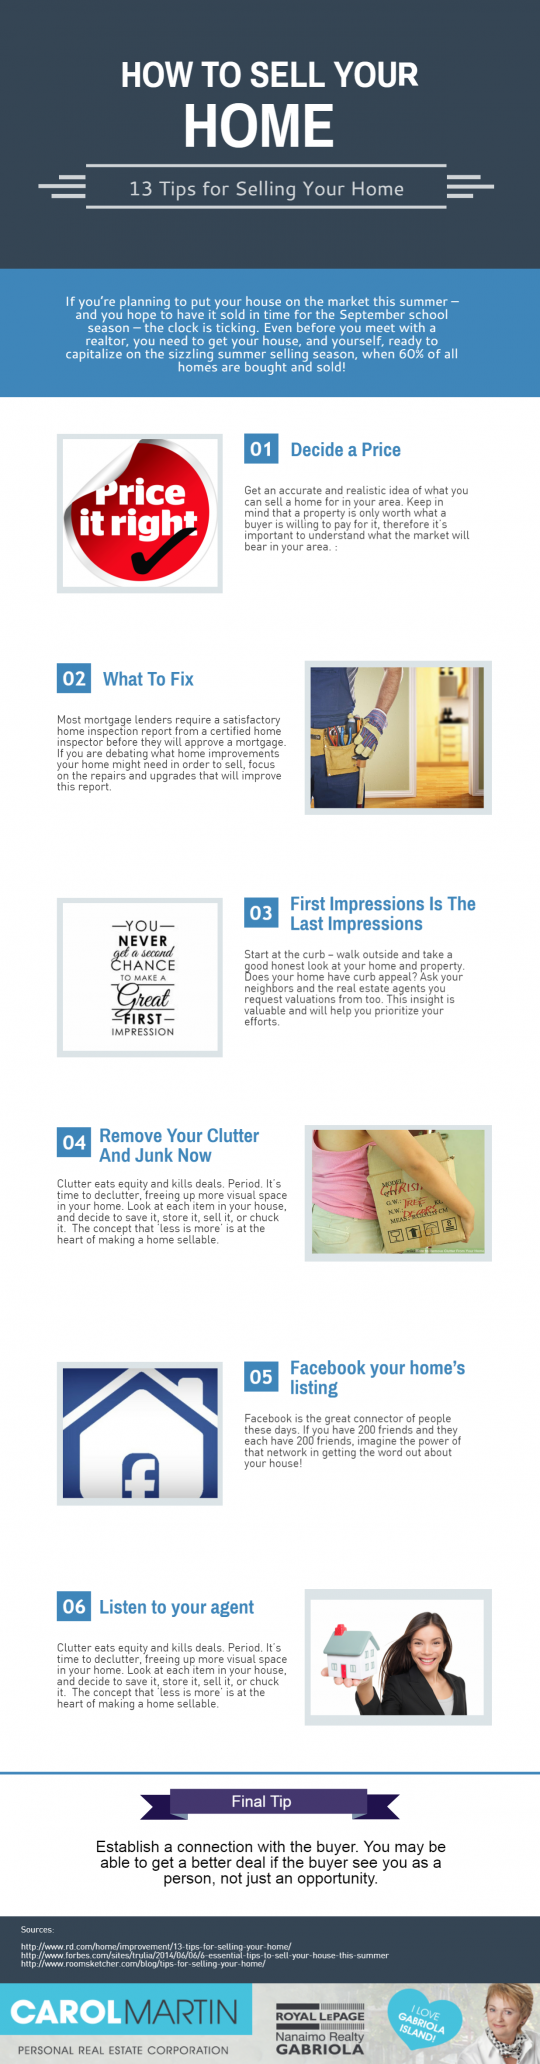 How to Sell Your Home Fast and Quick In Gabriola Island (INFOGRAPHIC)